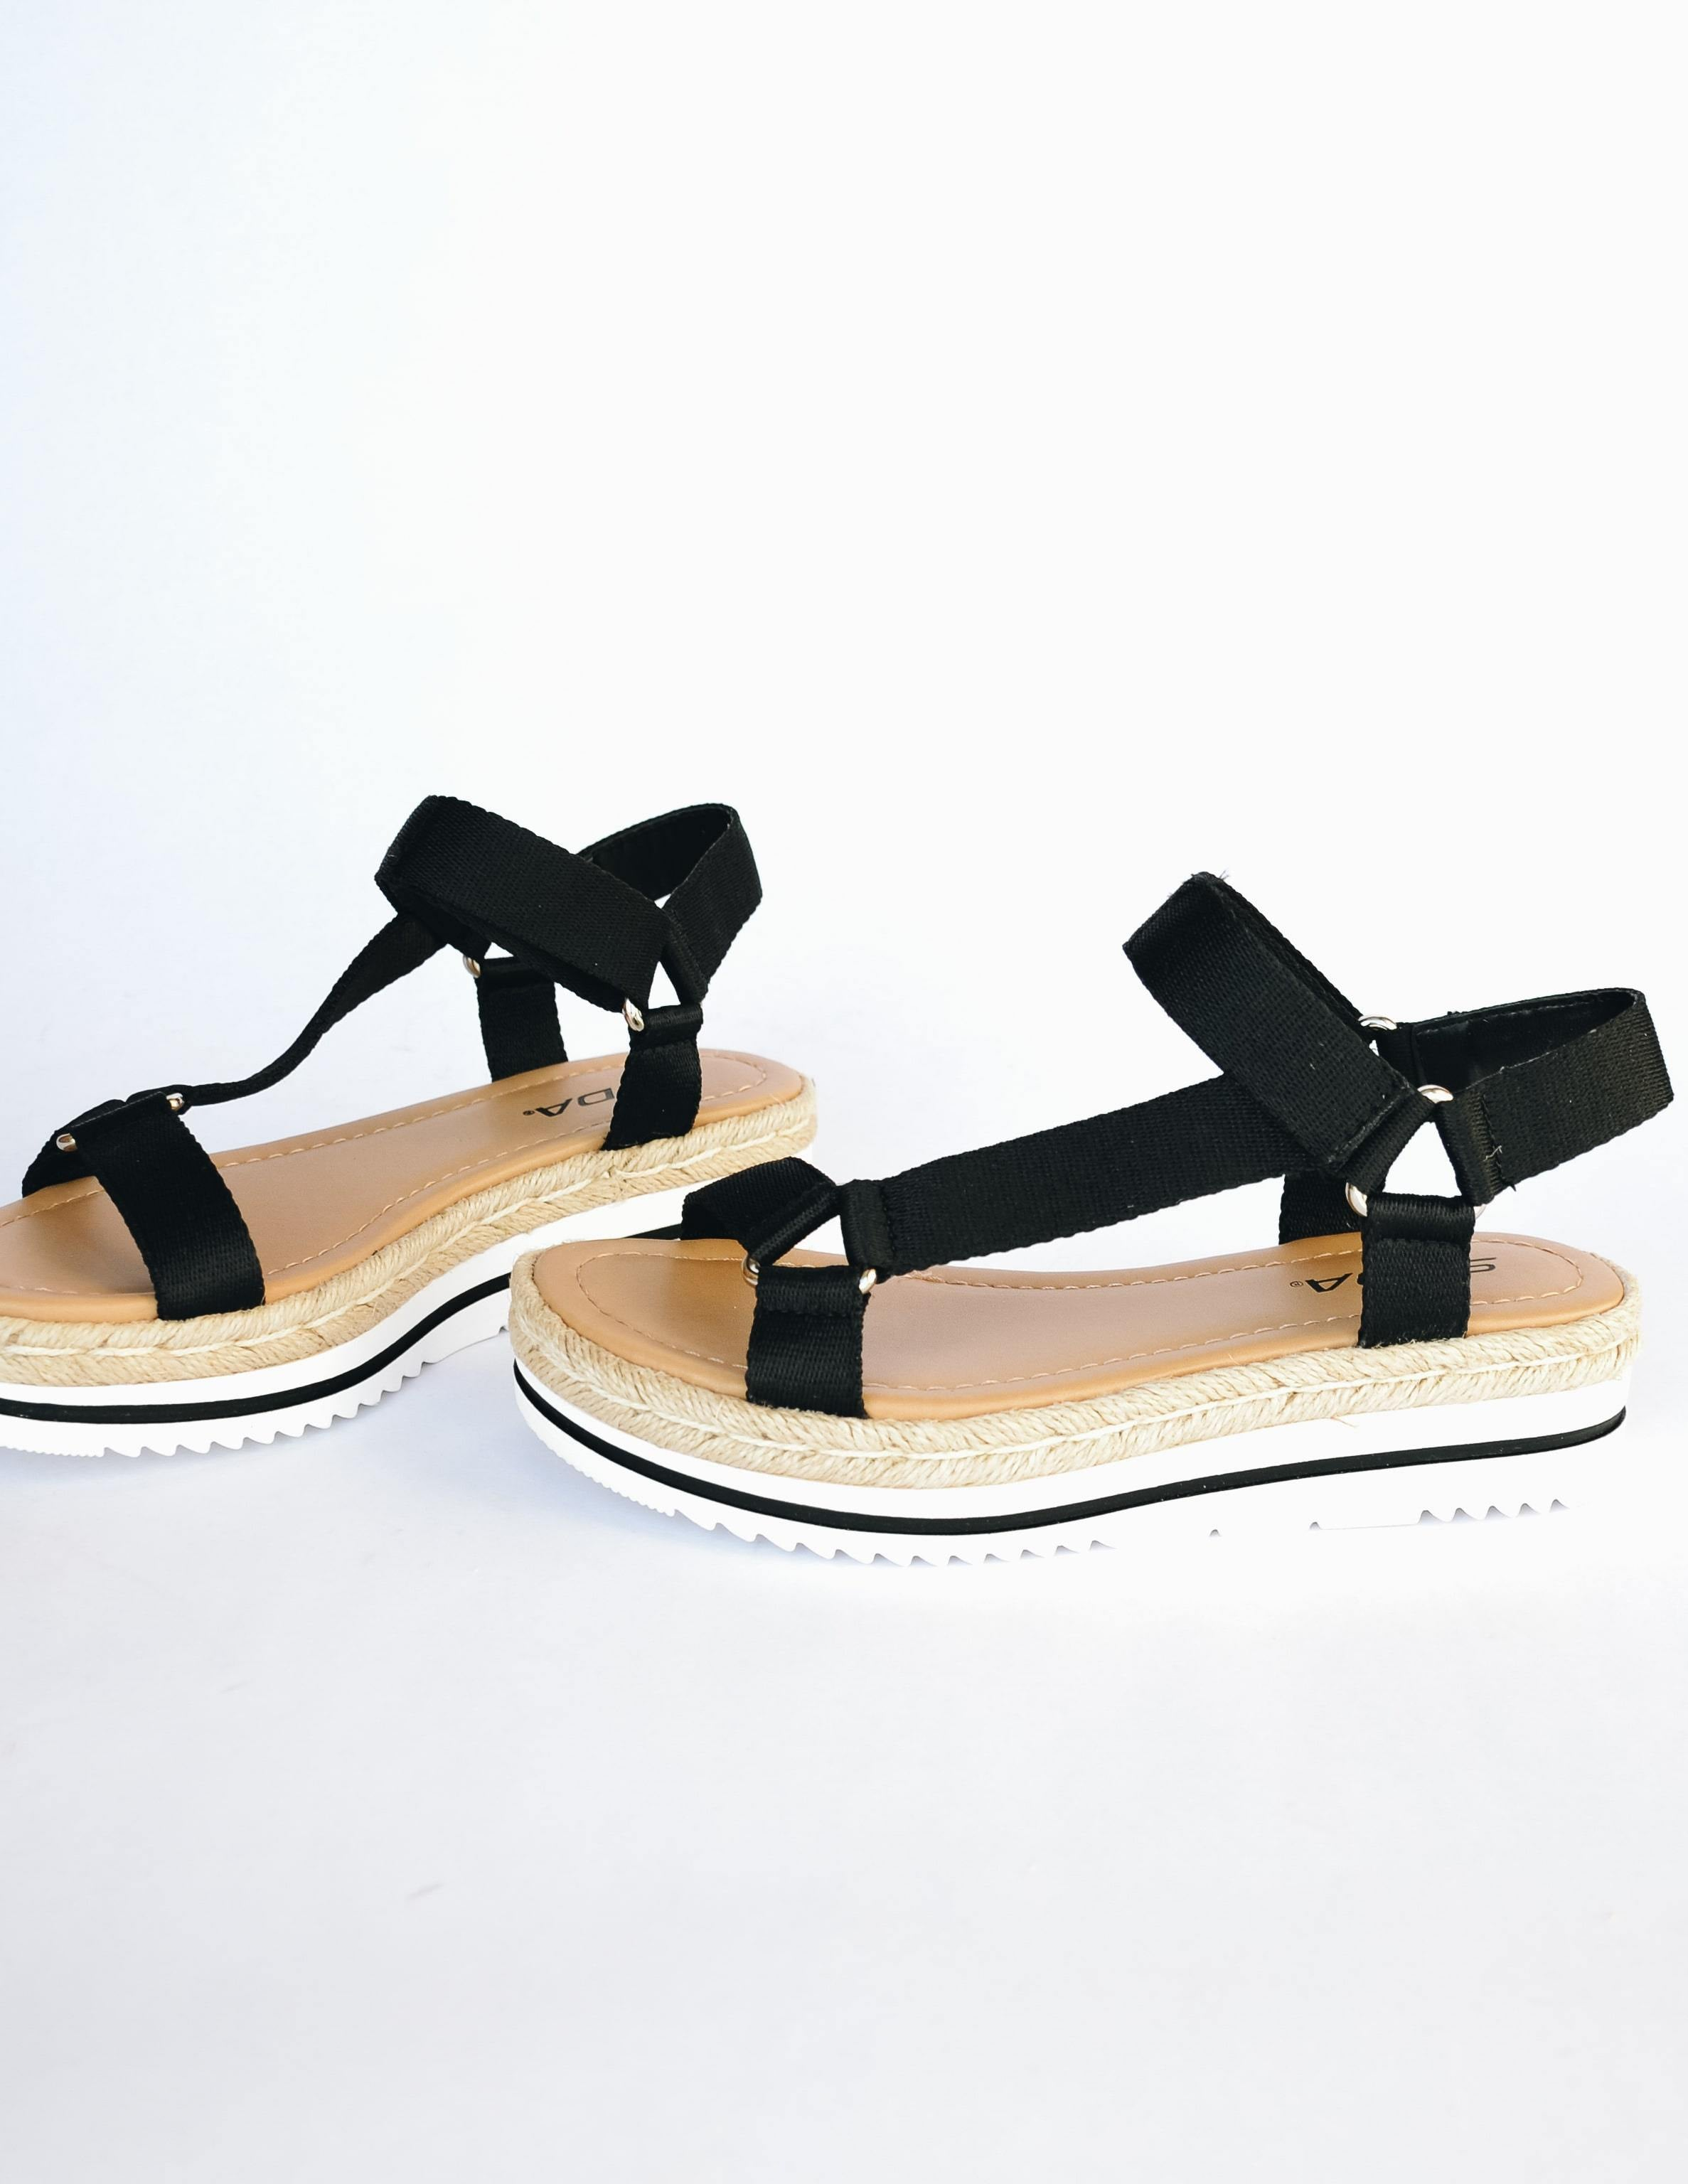 Black nylon strap sandals with rope trimmed white bottom platform sole